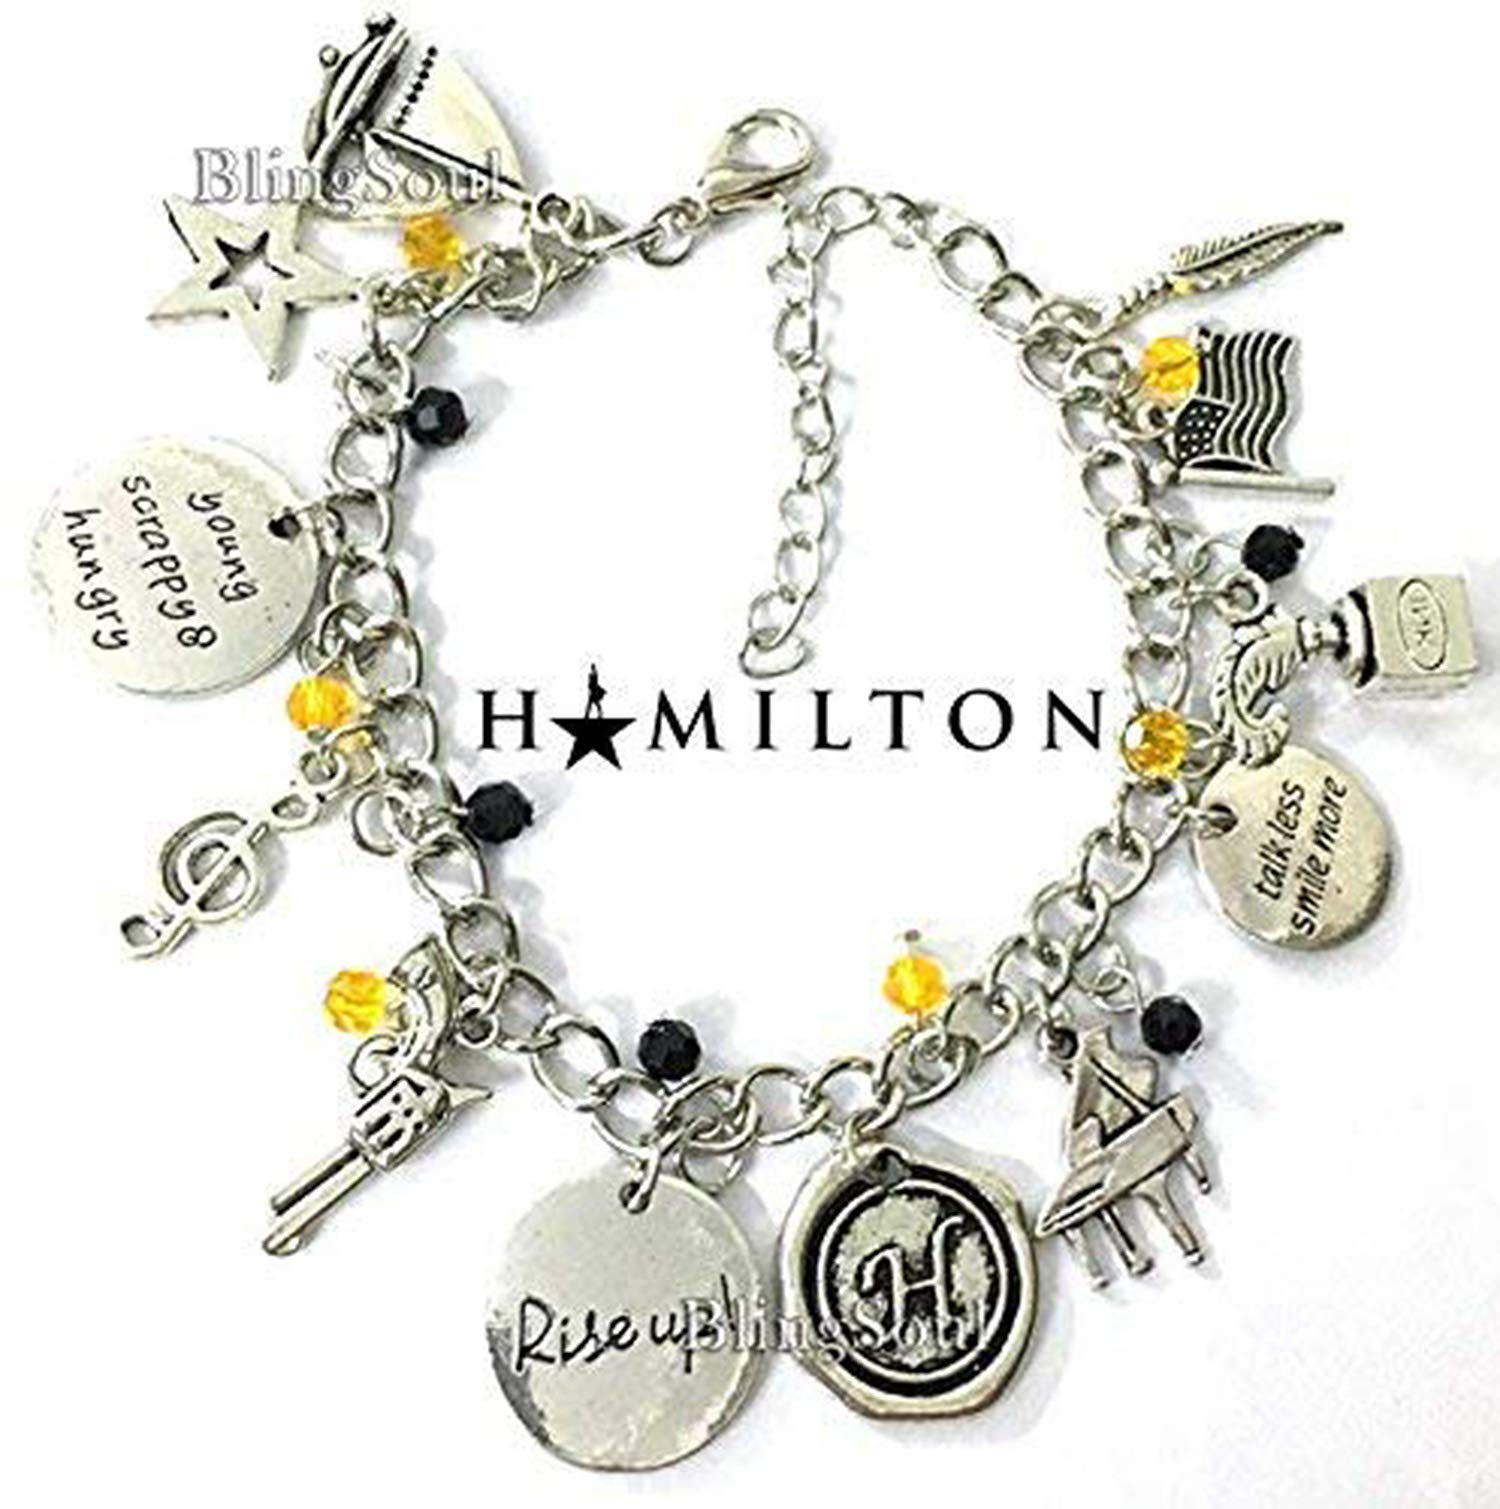 Hamilton Broadway Alexander Musical Jewelry - Disney Jewelry Merchandise Gifts Collection ⚡️Flash Sale⚡️ by BlingSoul (Image #3)